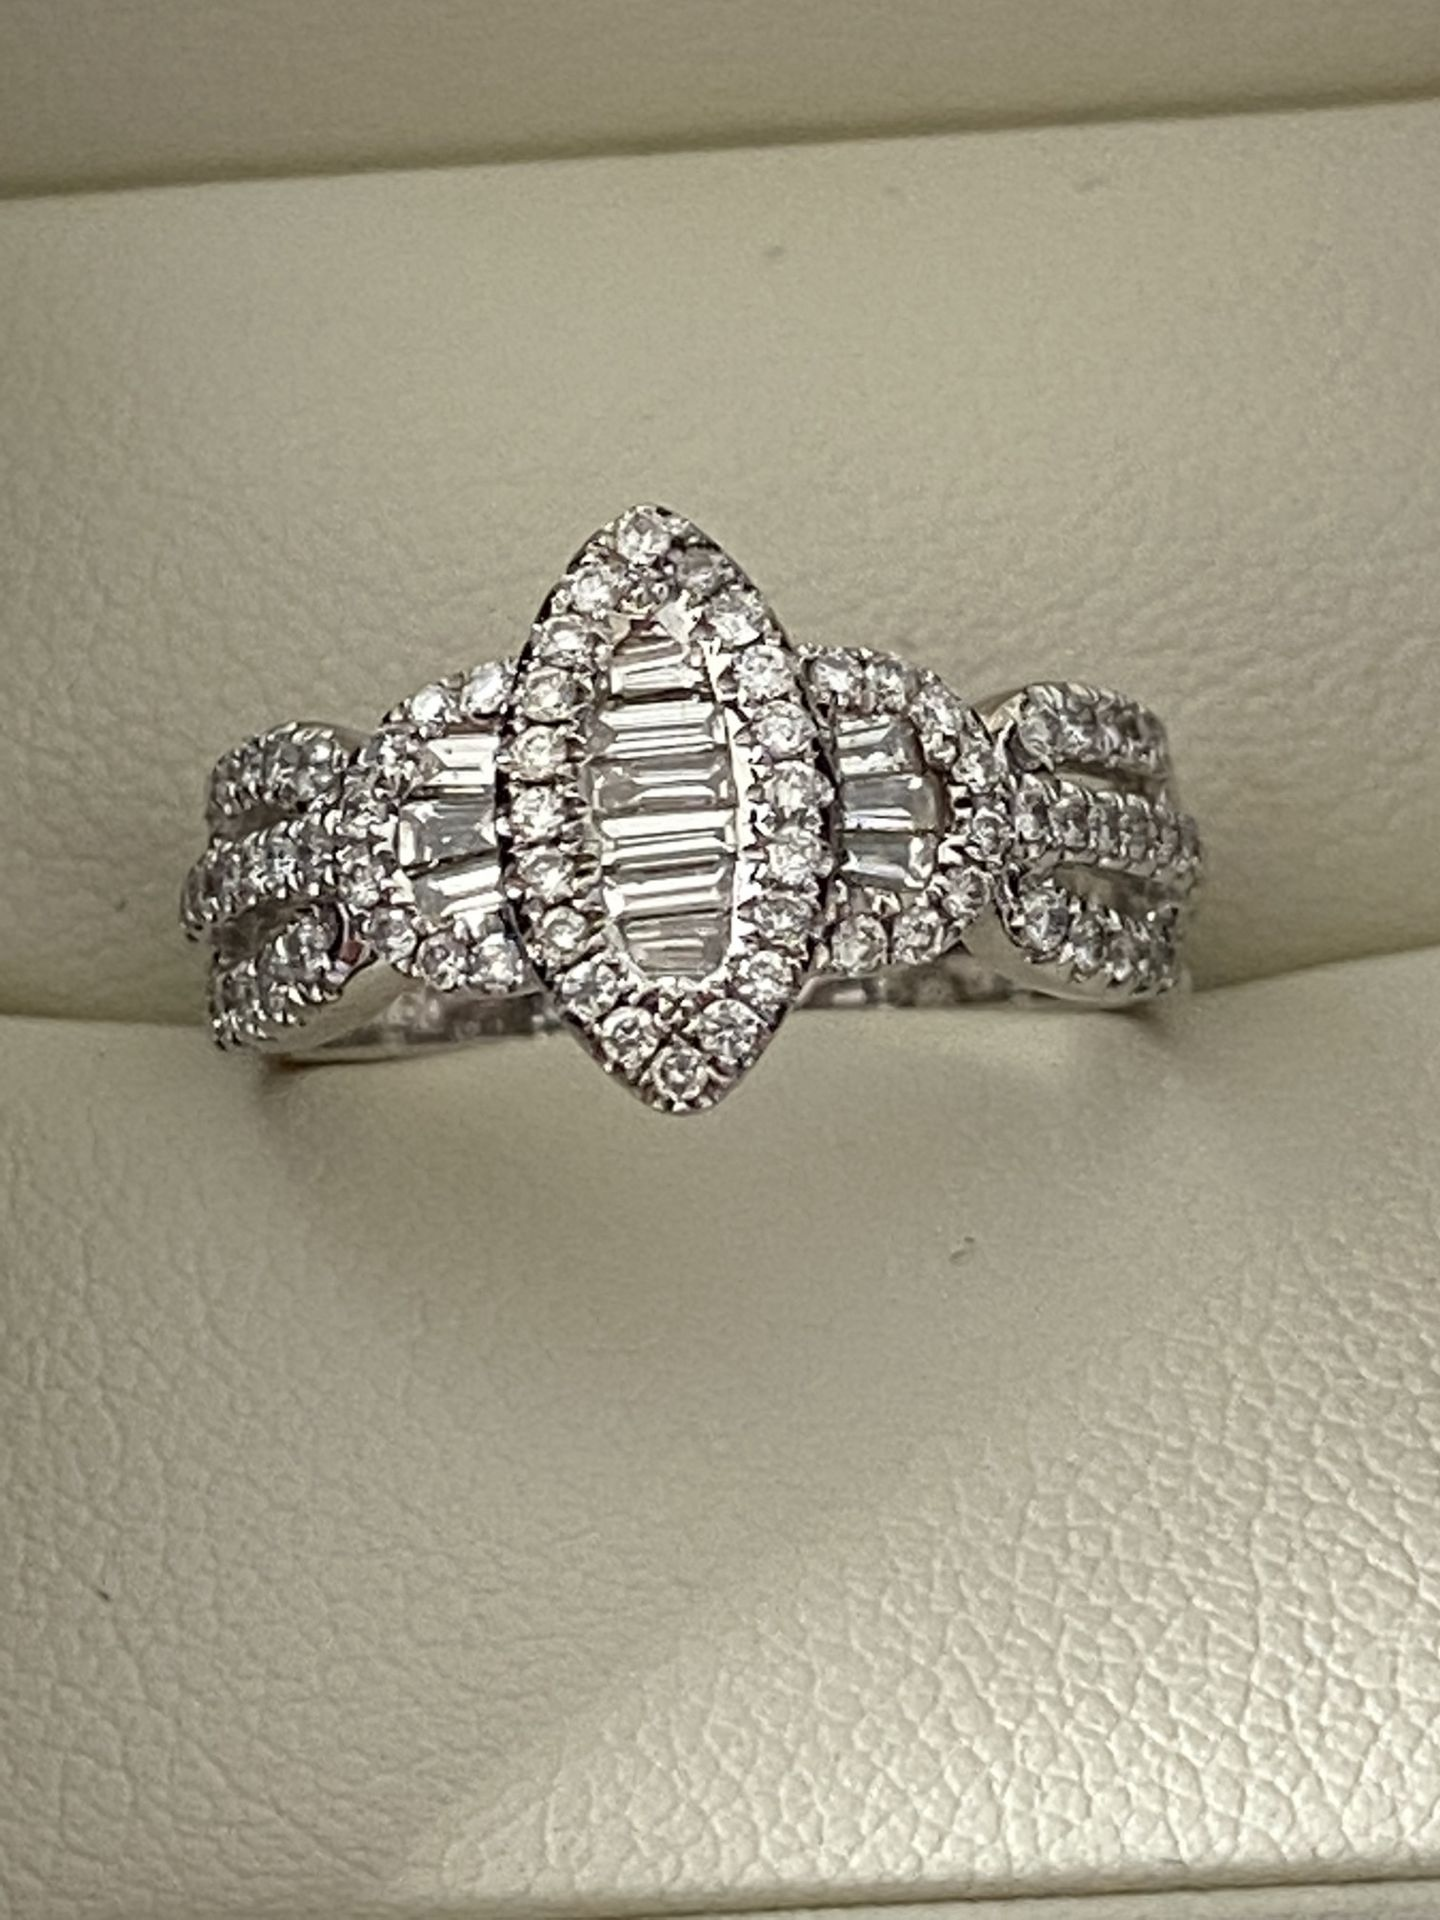 0.69ct DIAMOND MARQUISE SHAPED RING SET IN WHITE GOLD - Image 3 of 6